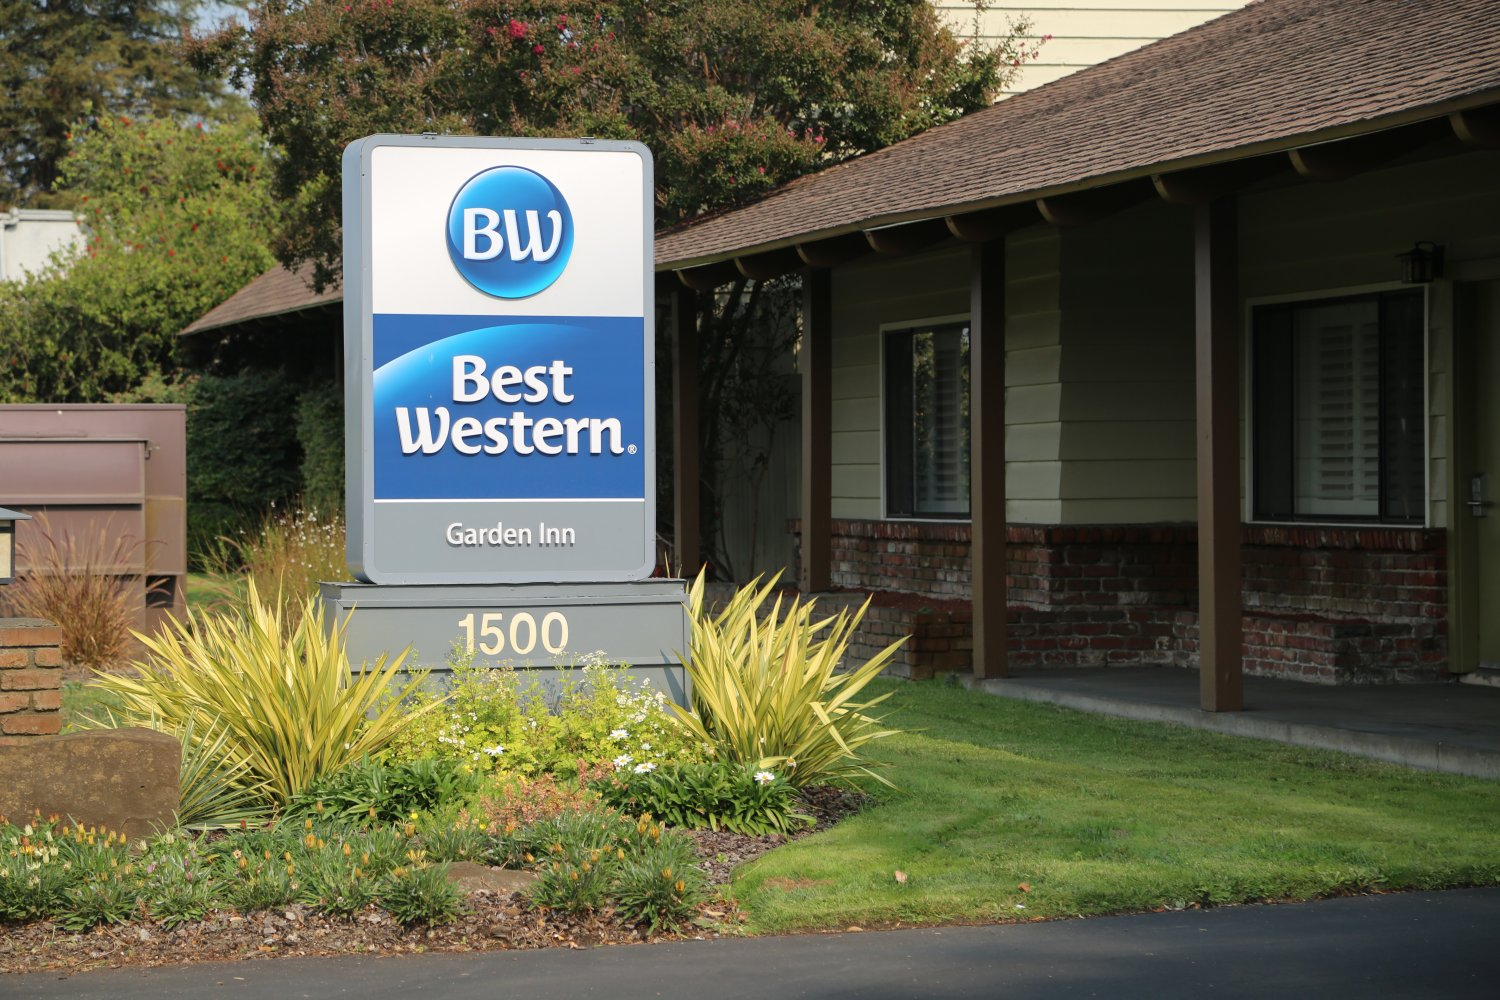 Best Western Garden Inn Is Rated 3 Stars And Is Located On 1500 Santa Rosa  Avenue. This Location Puts Them Closer To Downtown Than Some Of The Other  Santa ...